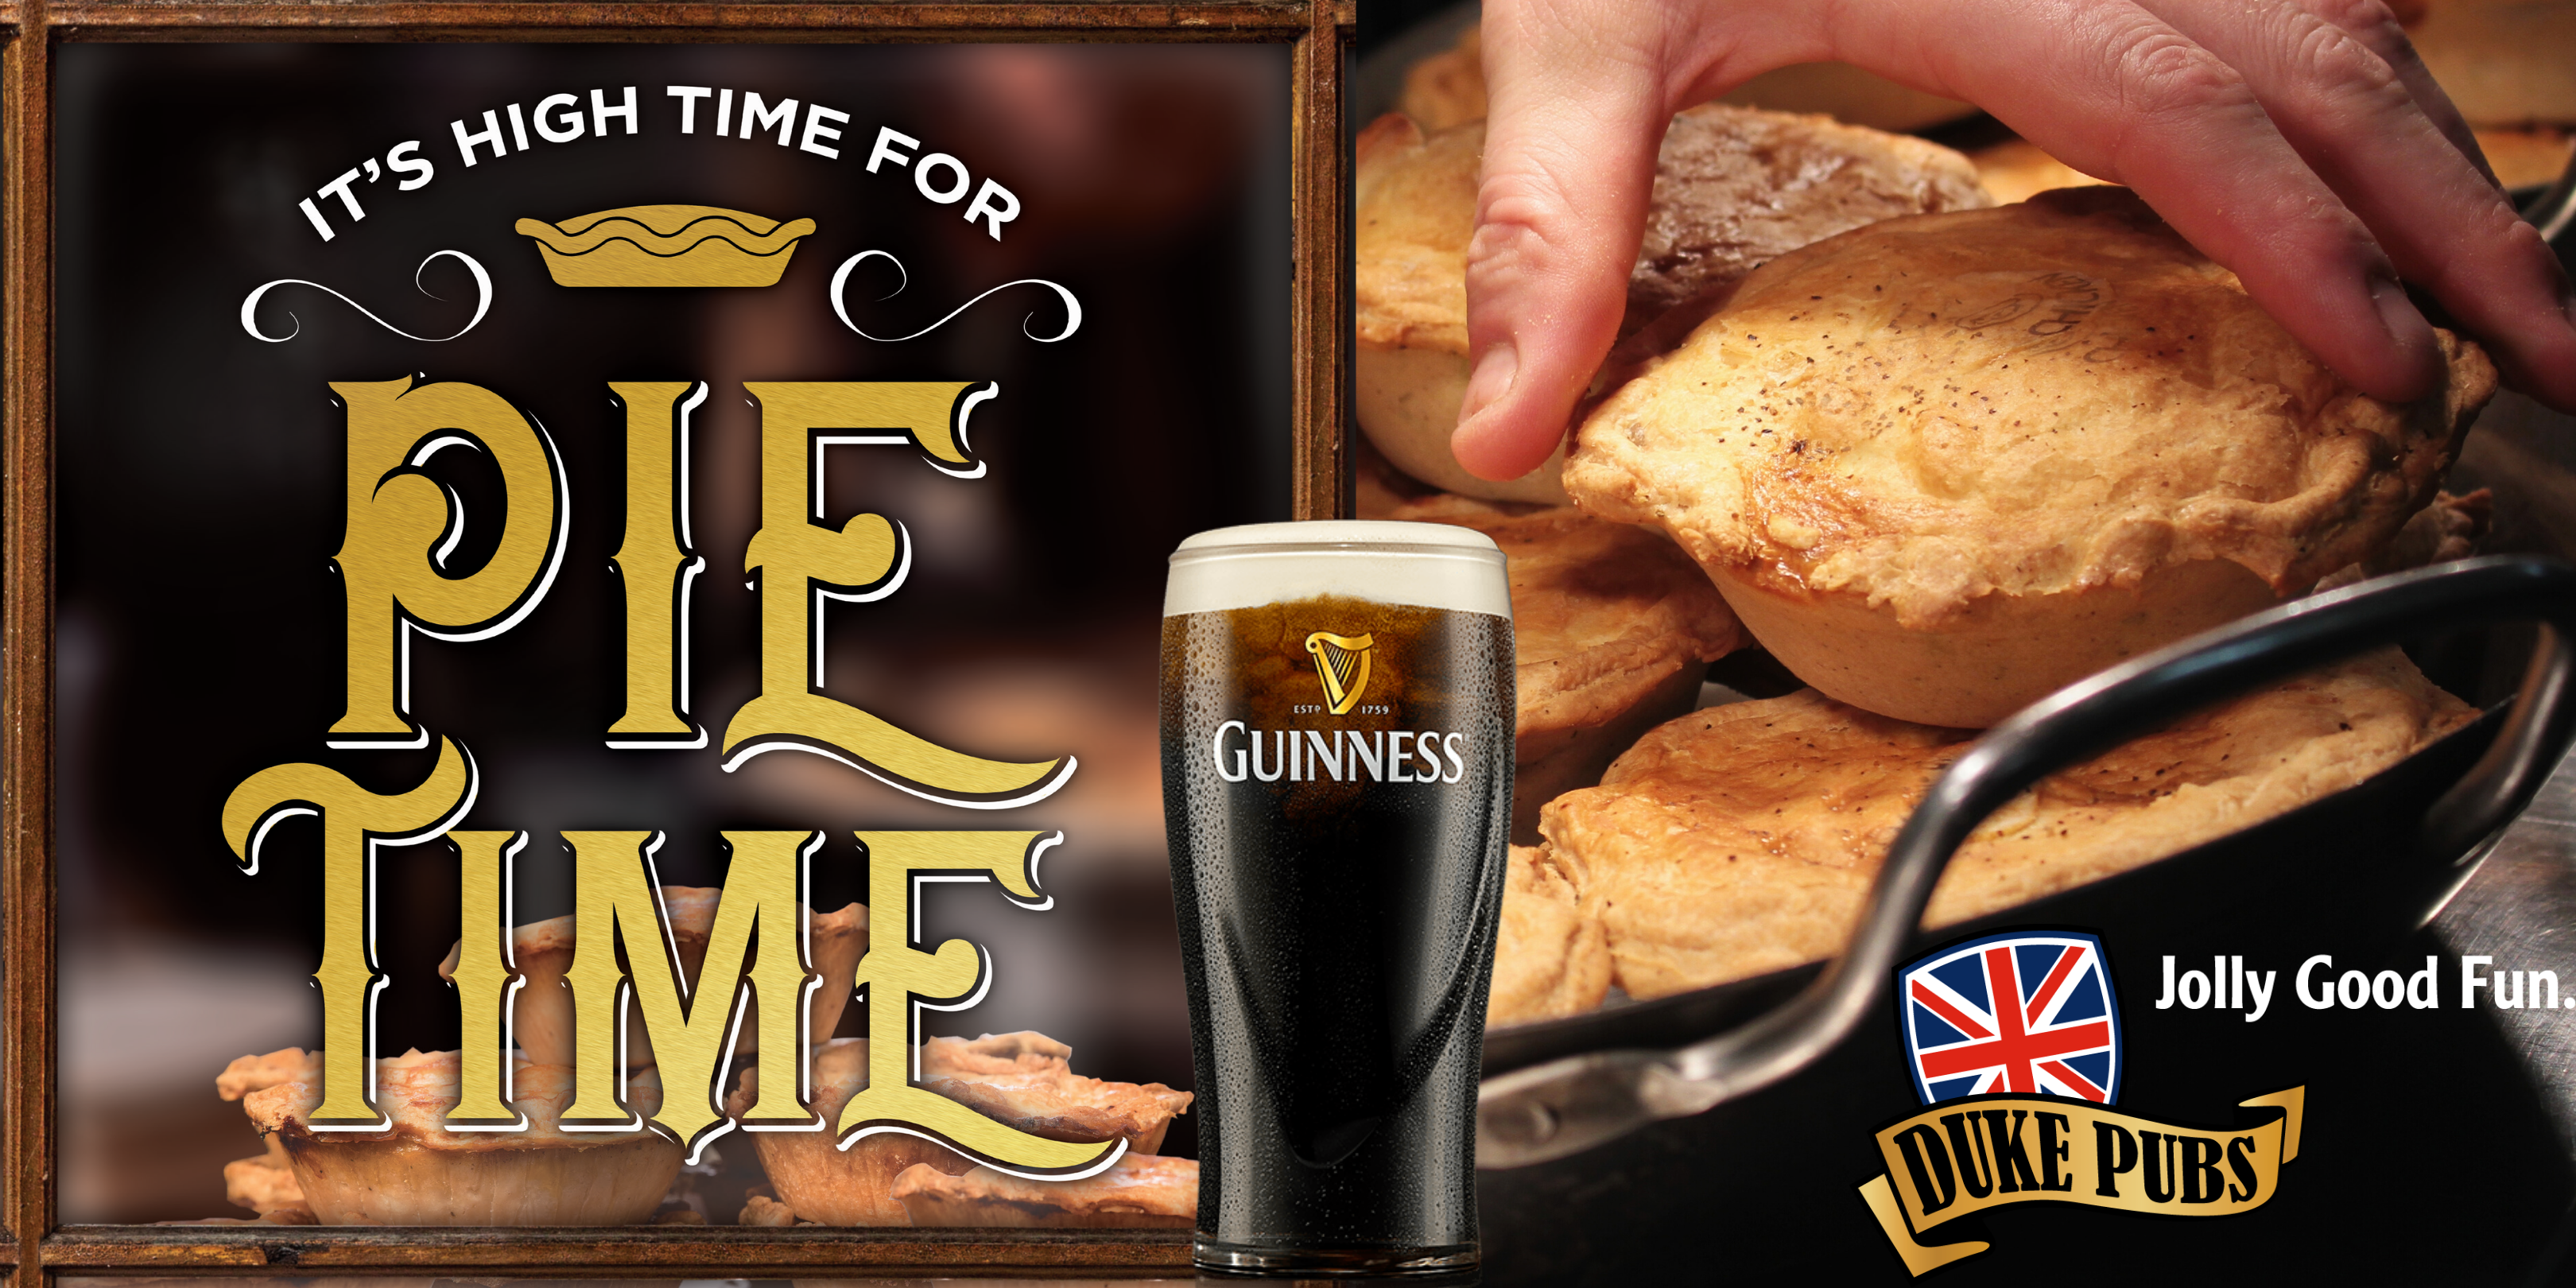 Free Samples of Guinness, Live Music and Complimentary Mini Pot Pies!